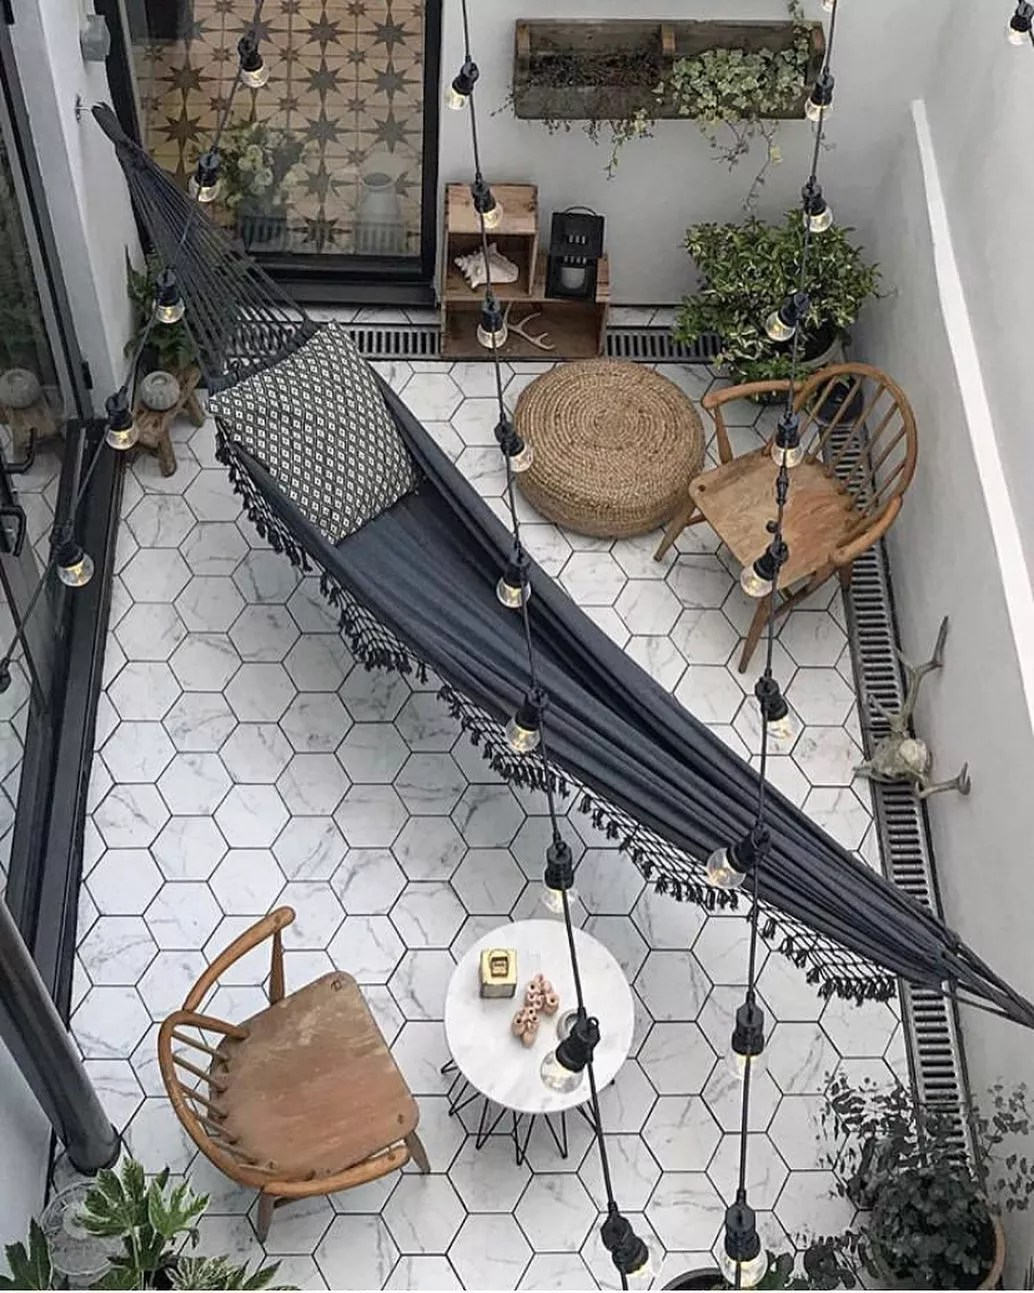 small patio with chairs and a hammock stretched across photo by Instagram user @ravenhawkdesigns